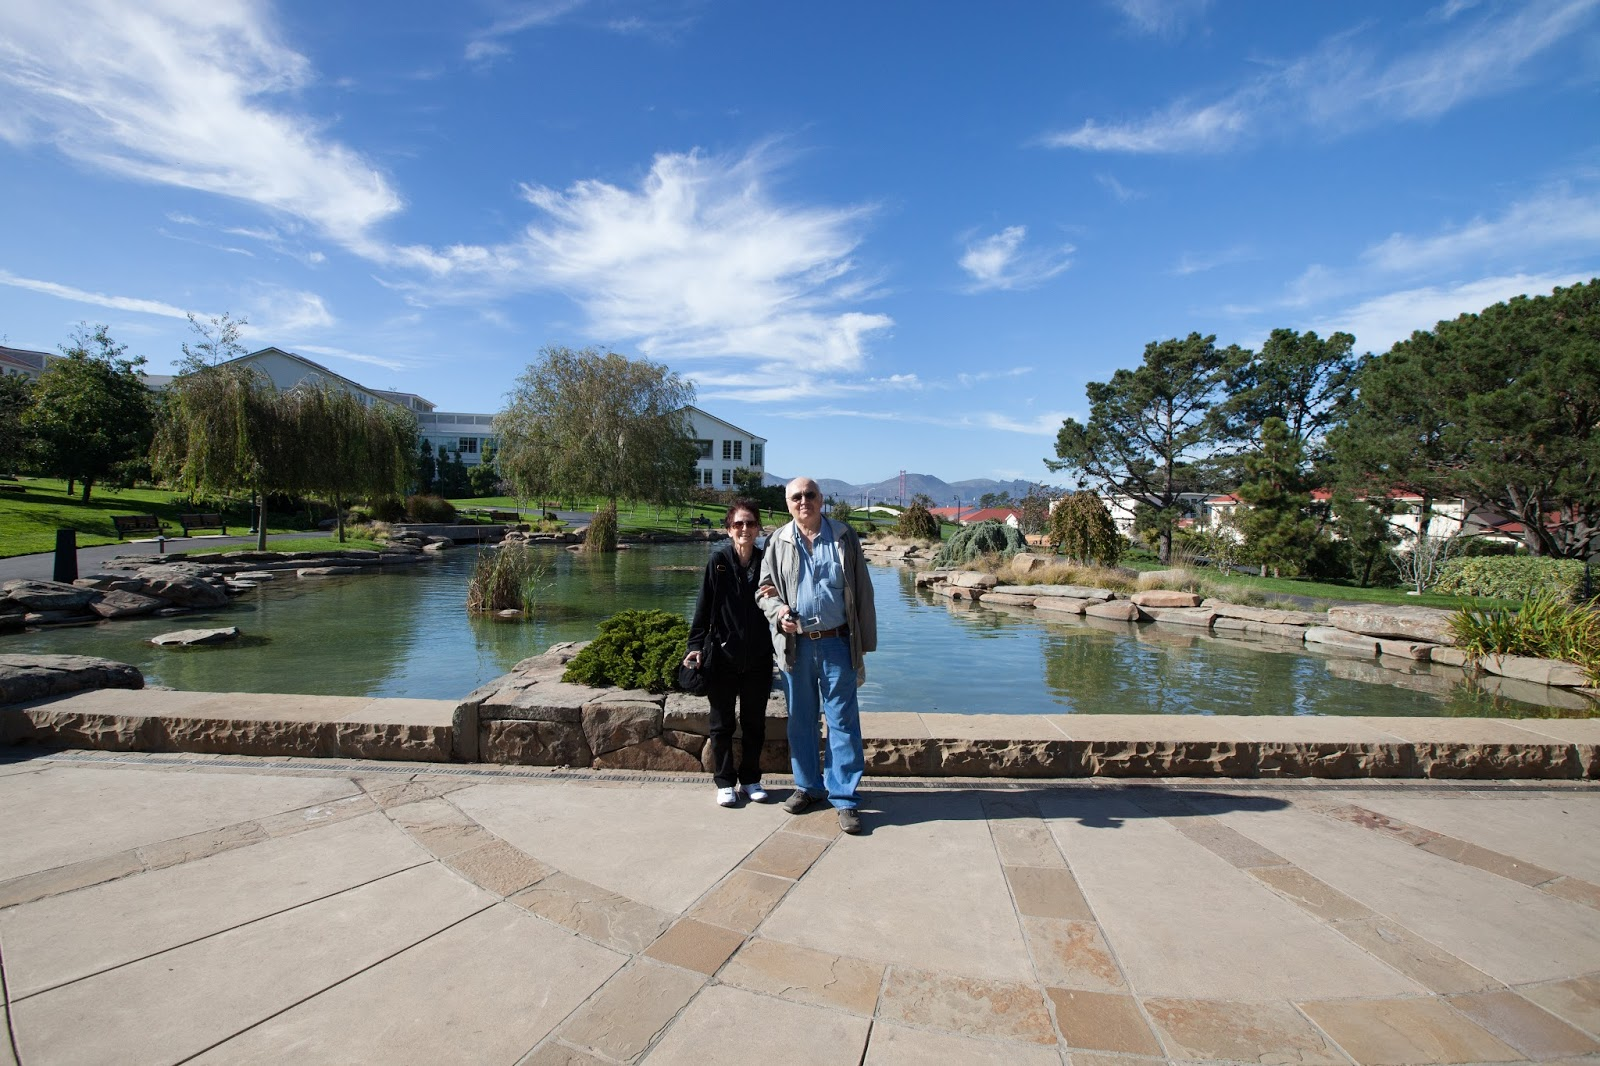 My parents on the Lucasfilm campus